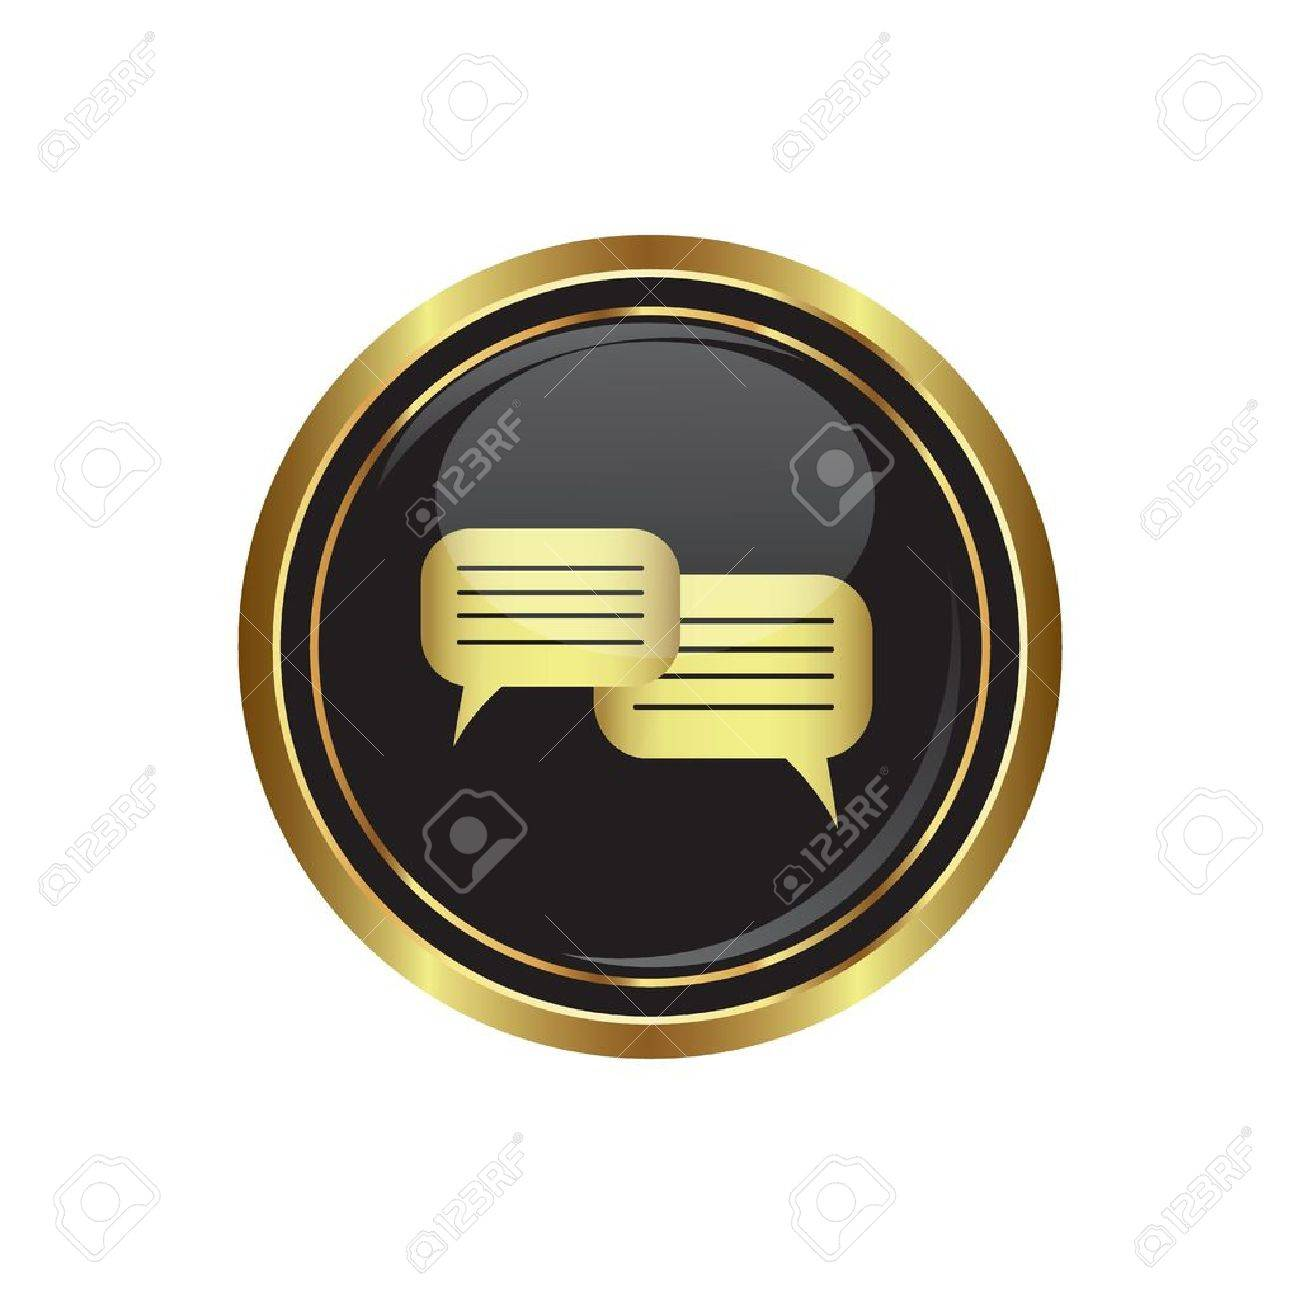 Speech bubbles icon on the black with gold round button  Vector illustration Stock Vector - 16710021